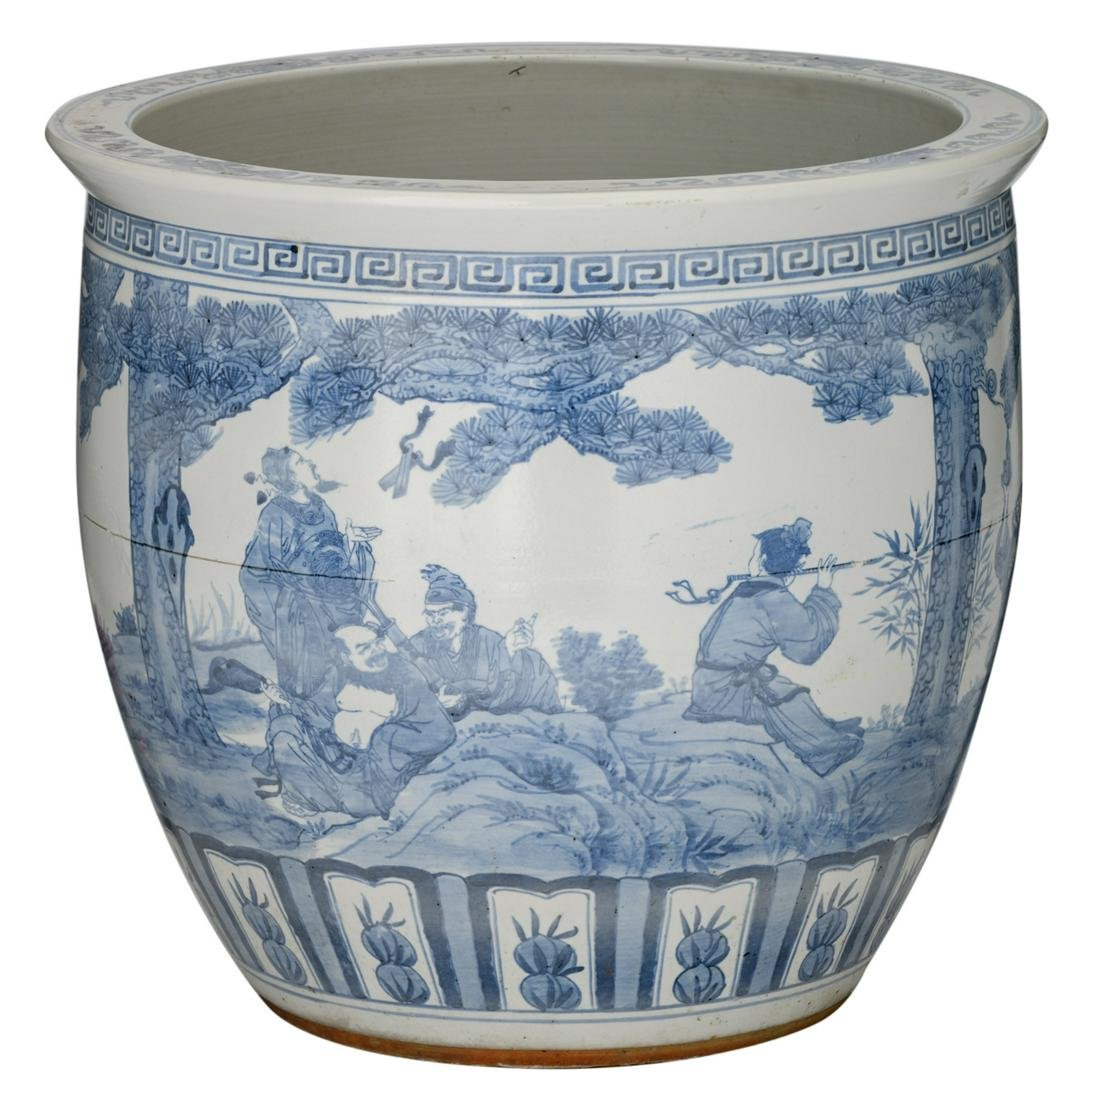 A large Chinese blue and white fish bowl, all over